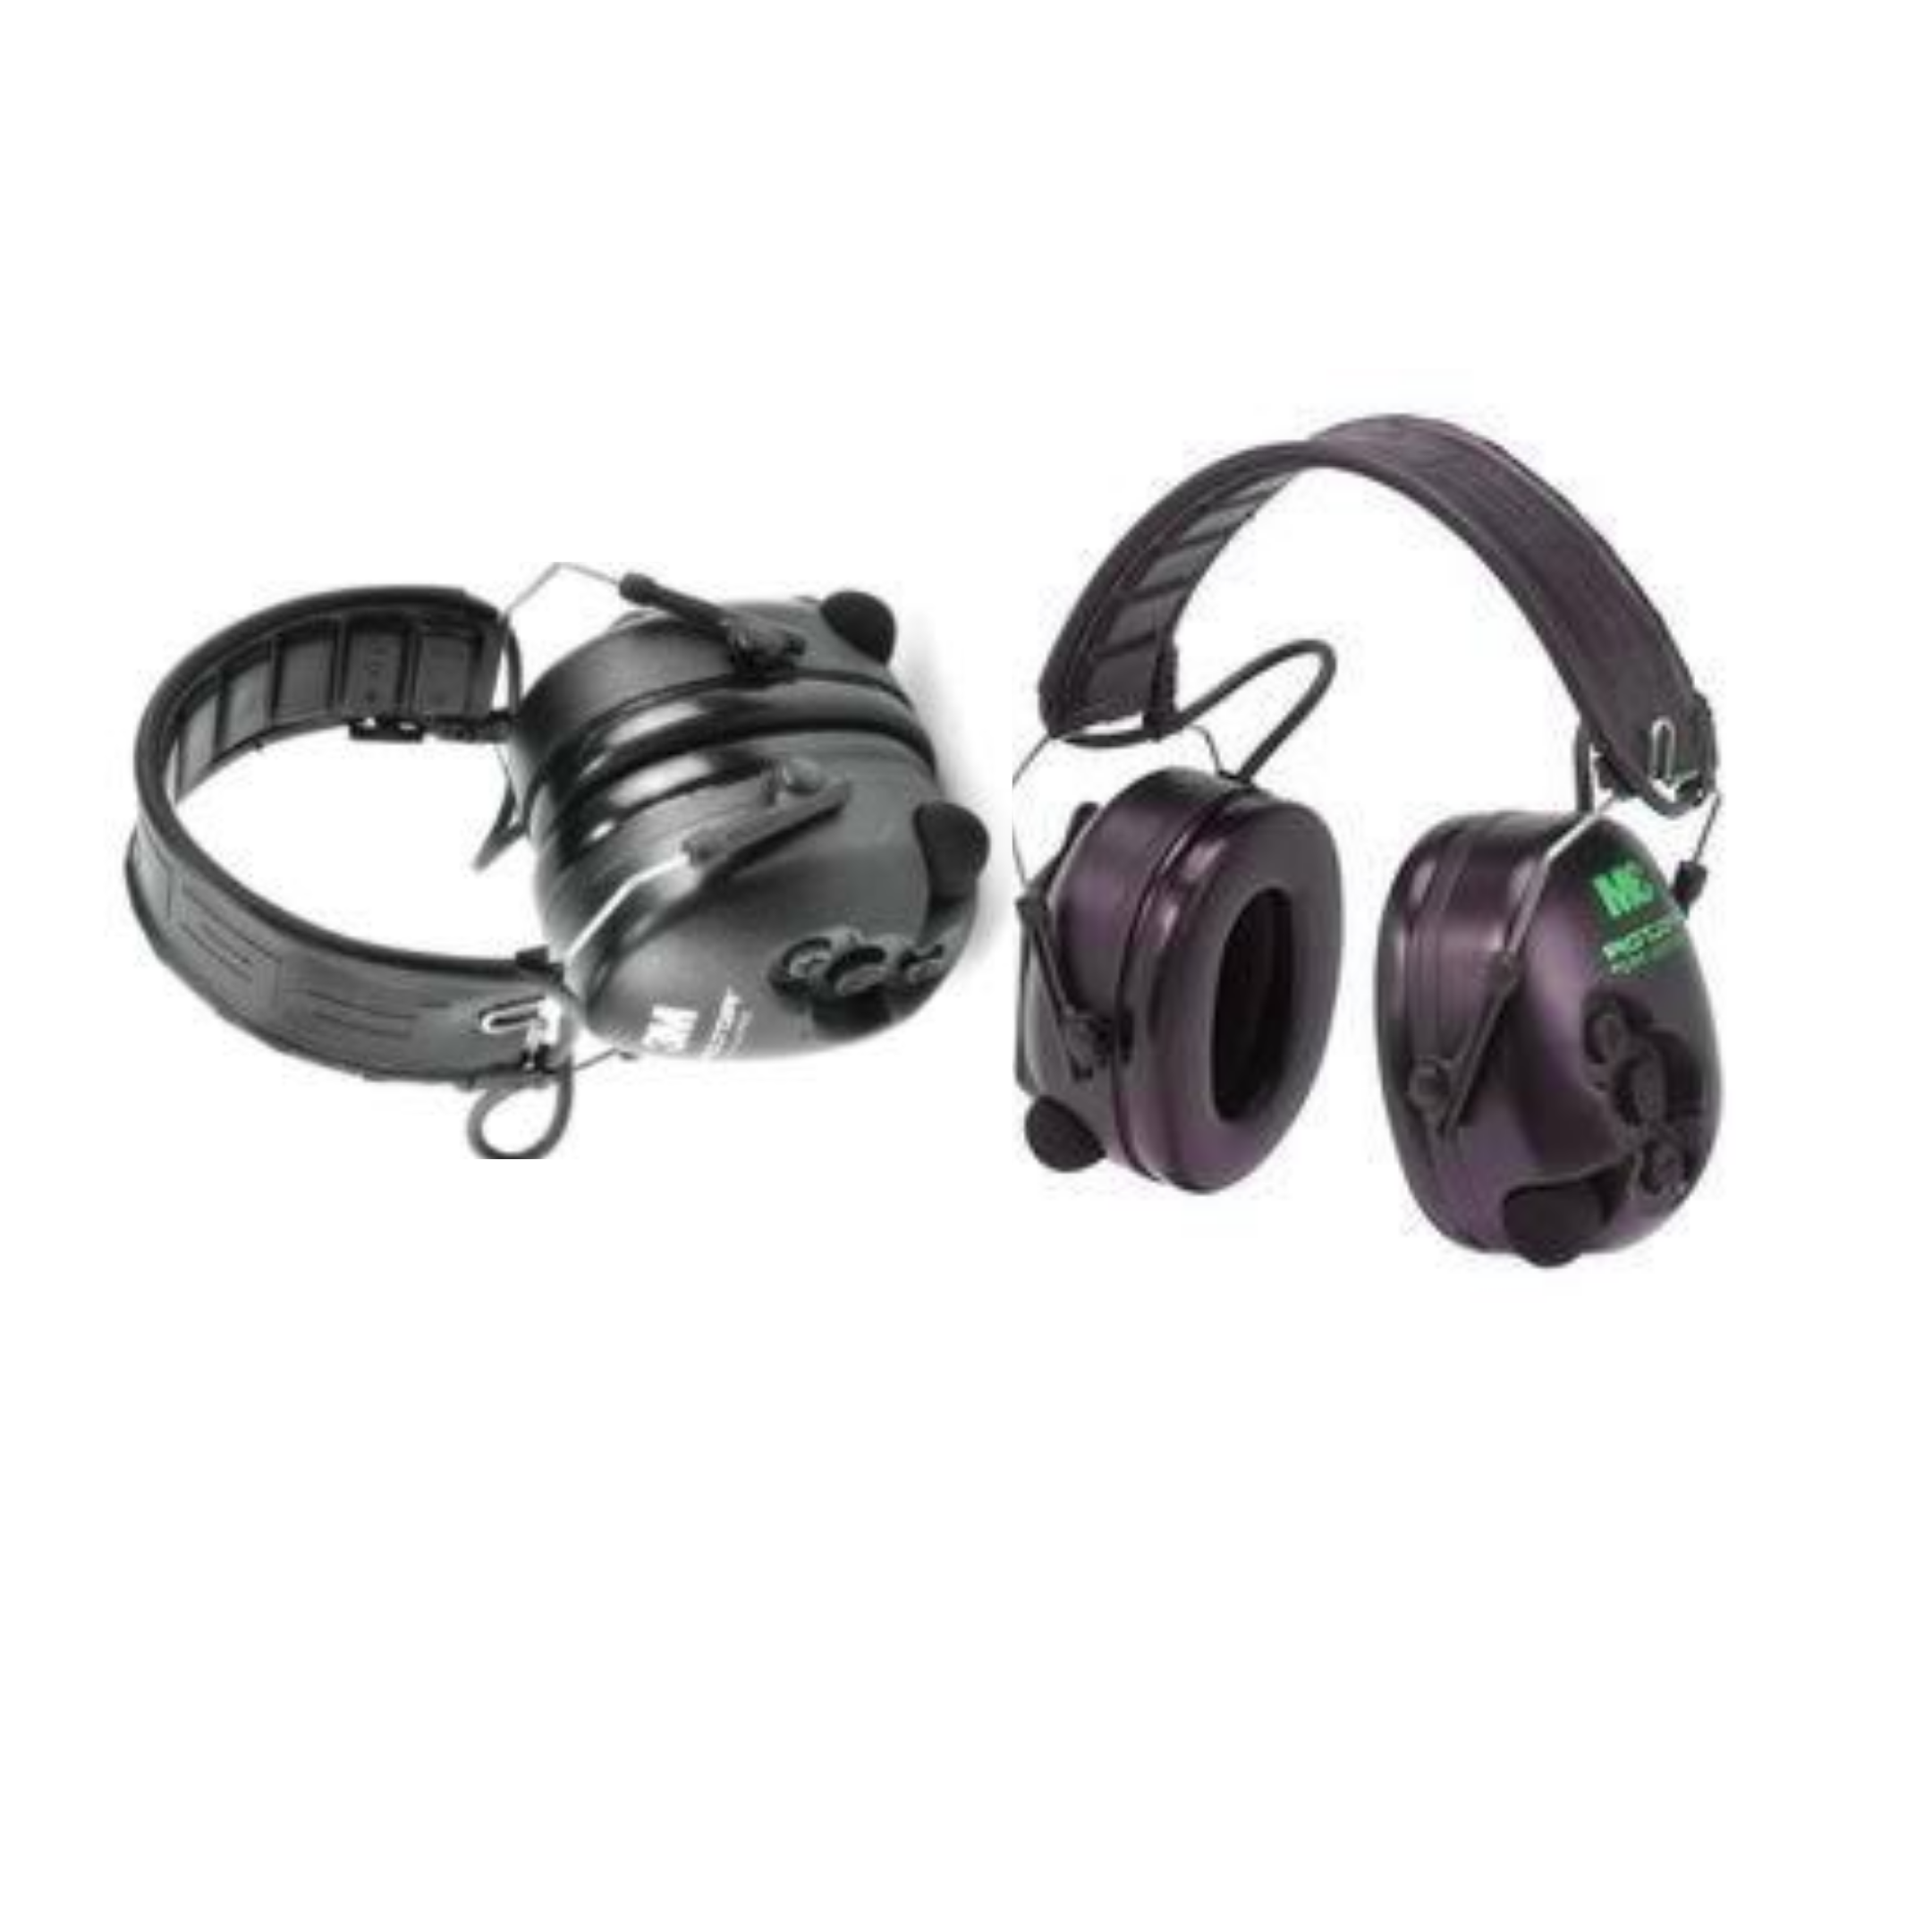 2 black sets of 3M Peltor SV Tactical Pro Hearing Protector EarMuffs for hunting